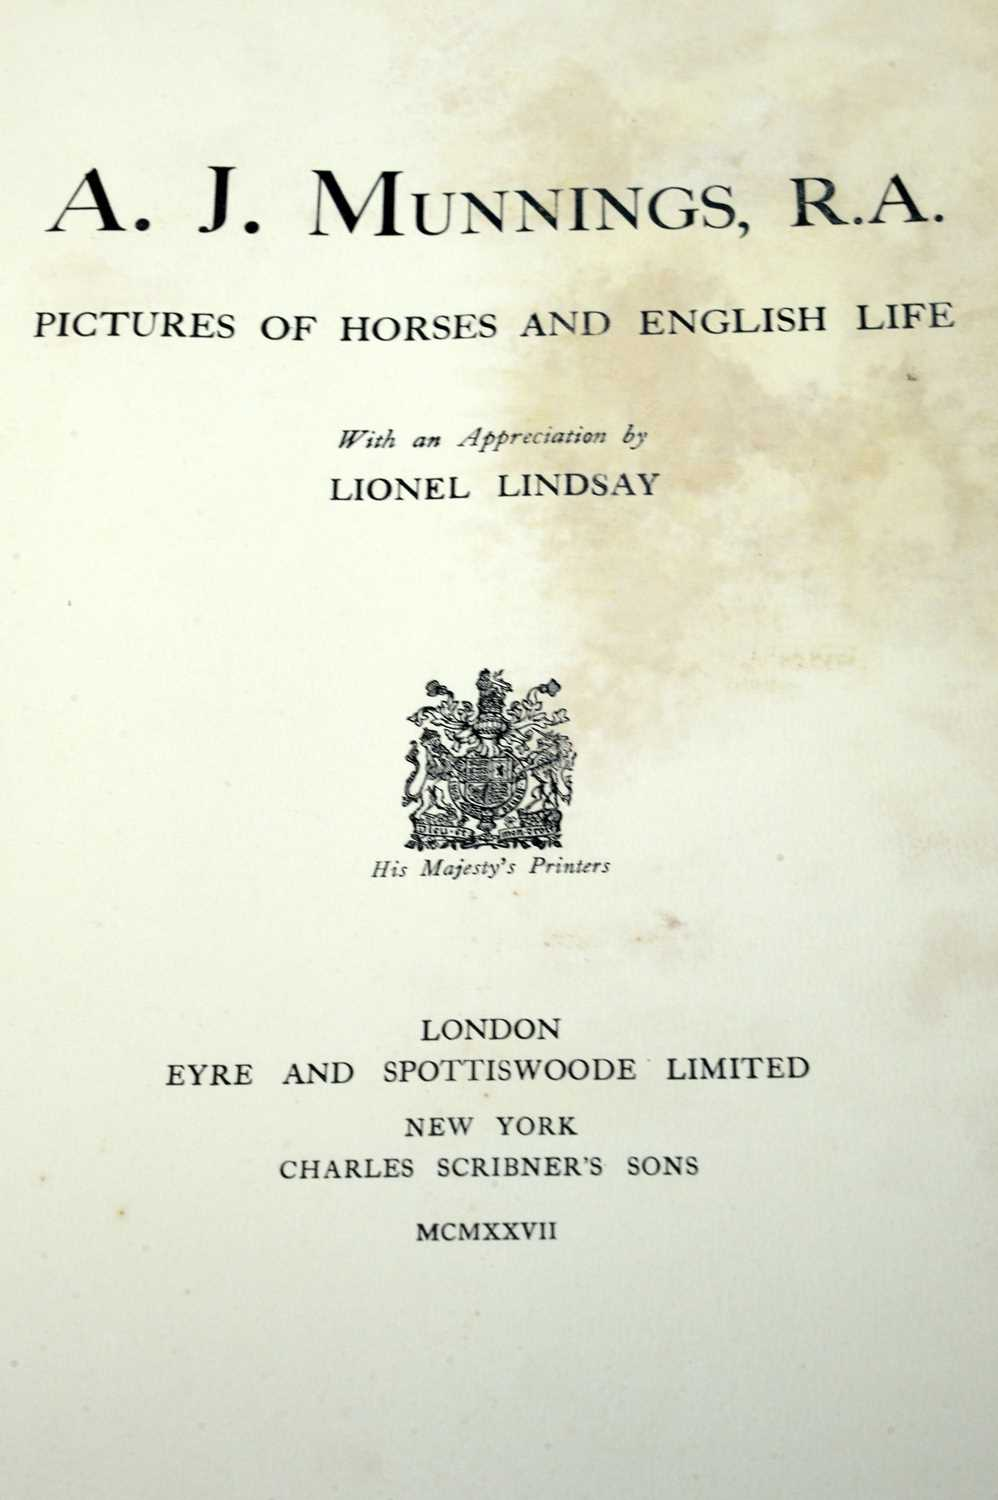 Books on Hunting - Image 7 of 7